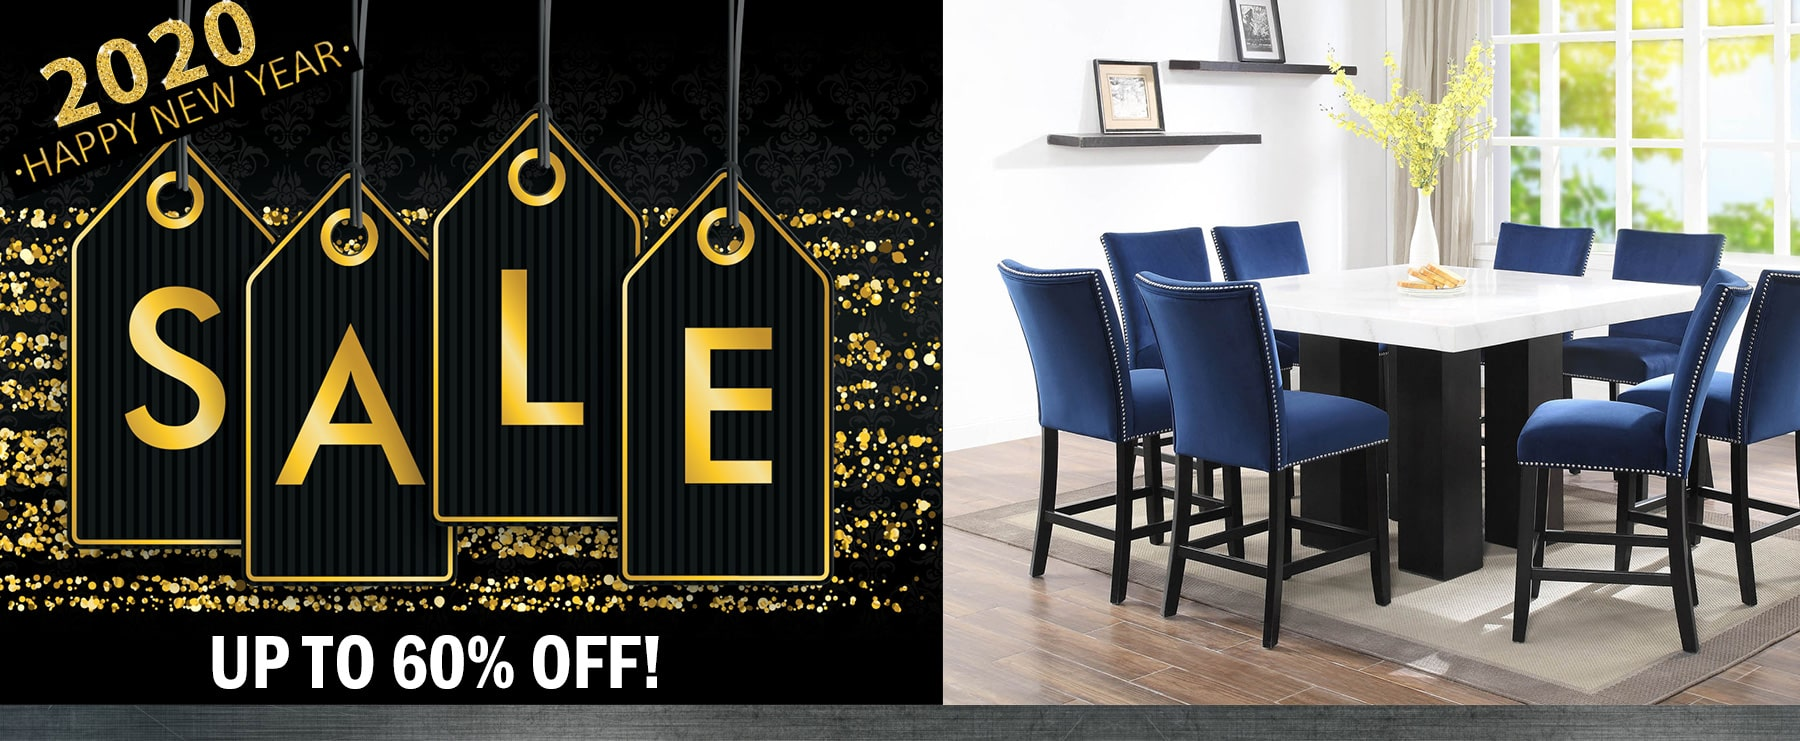 New Year Furniture Deals